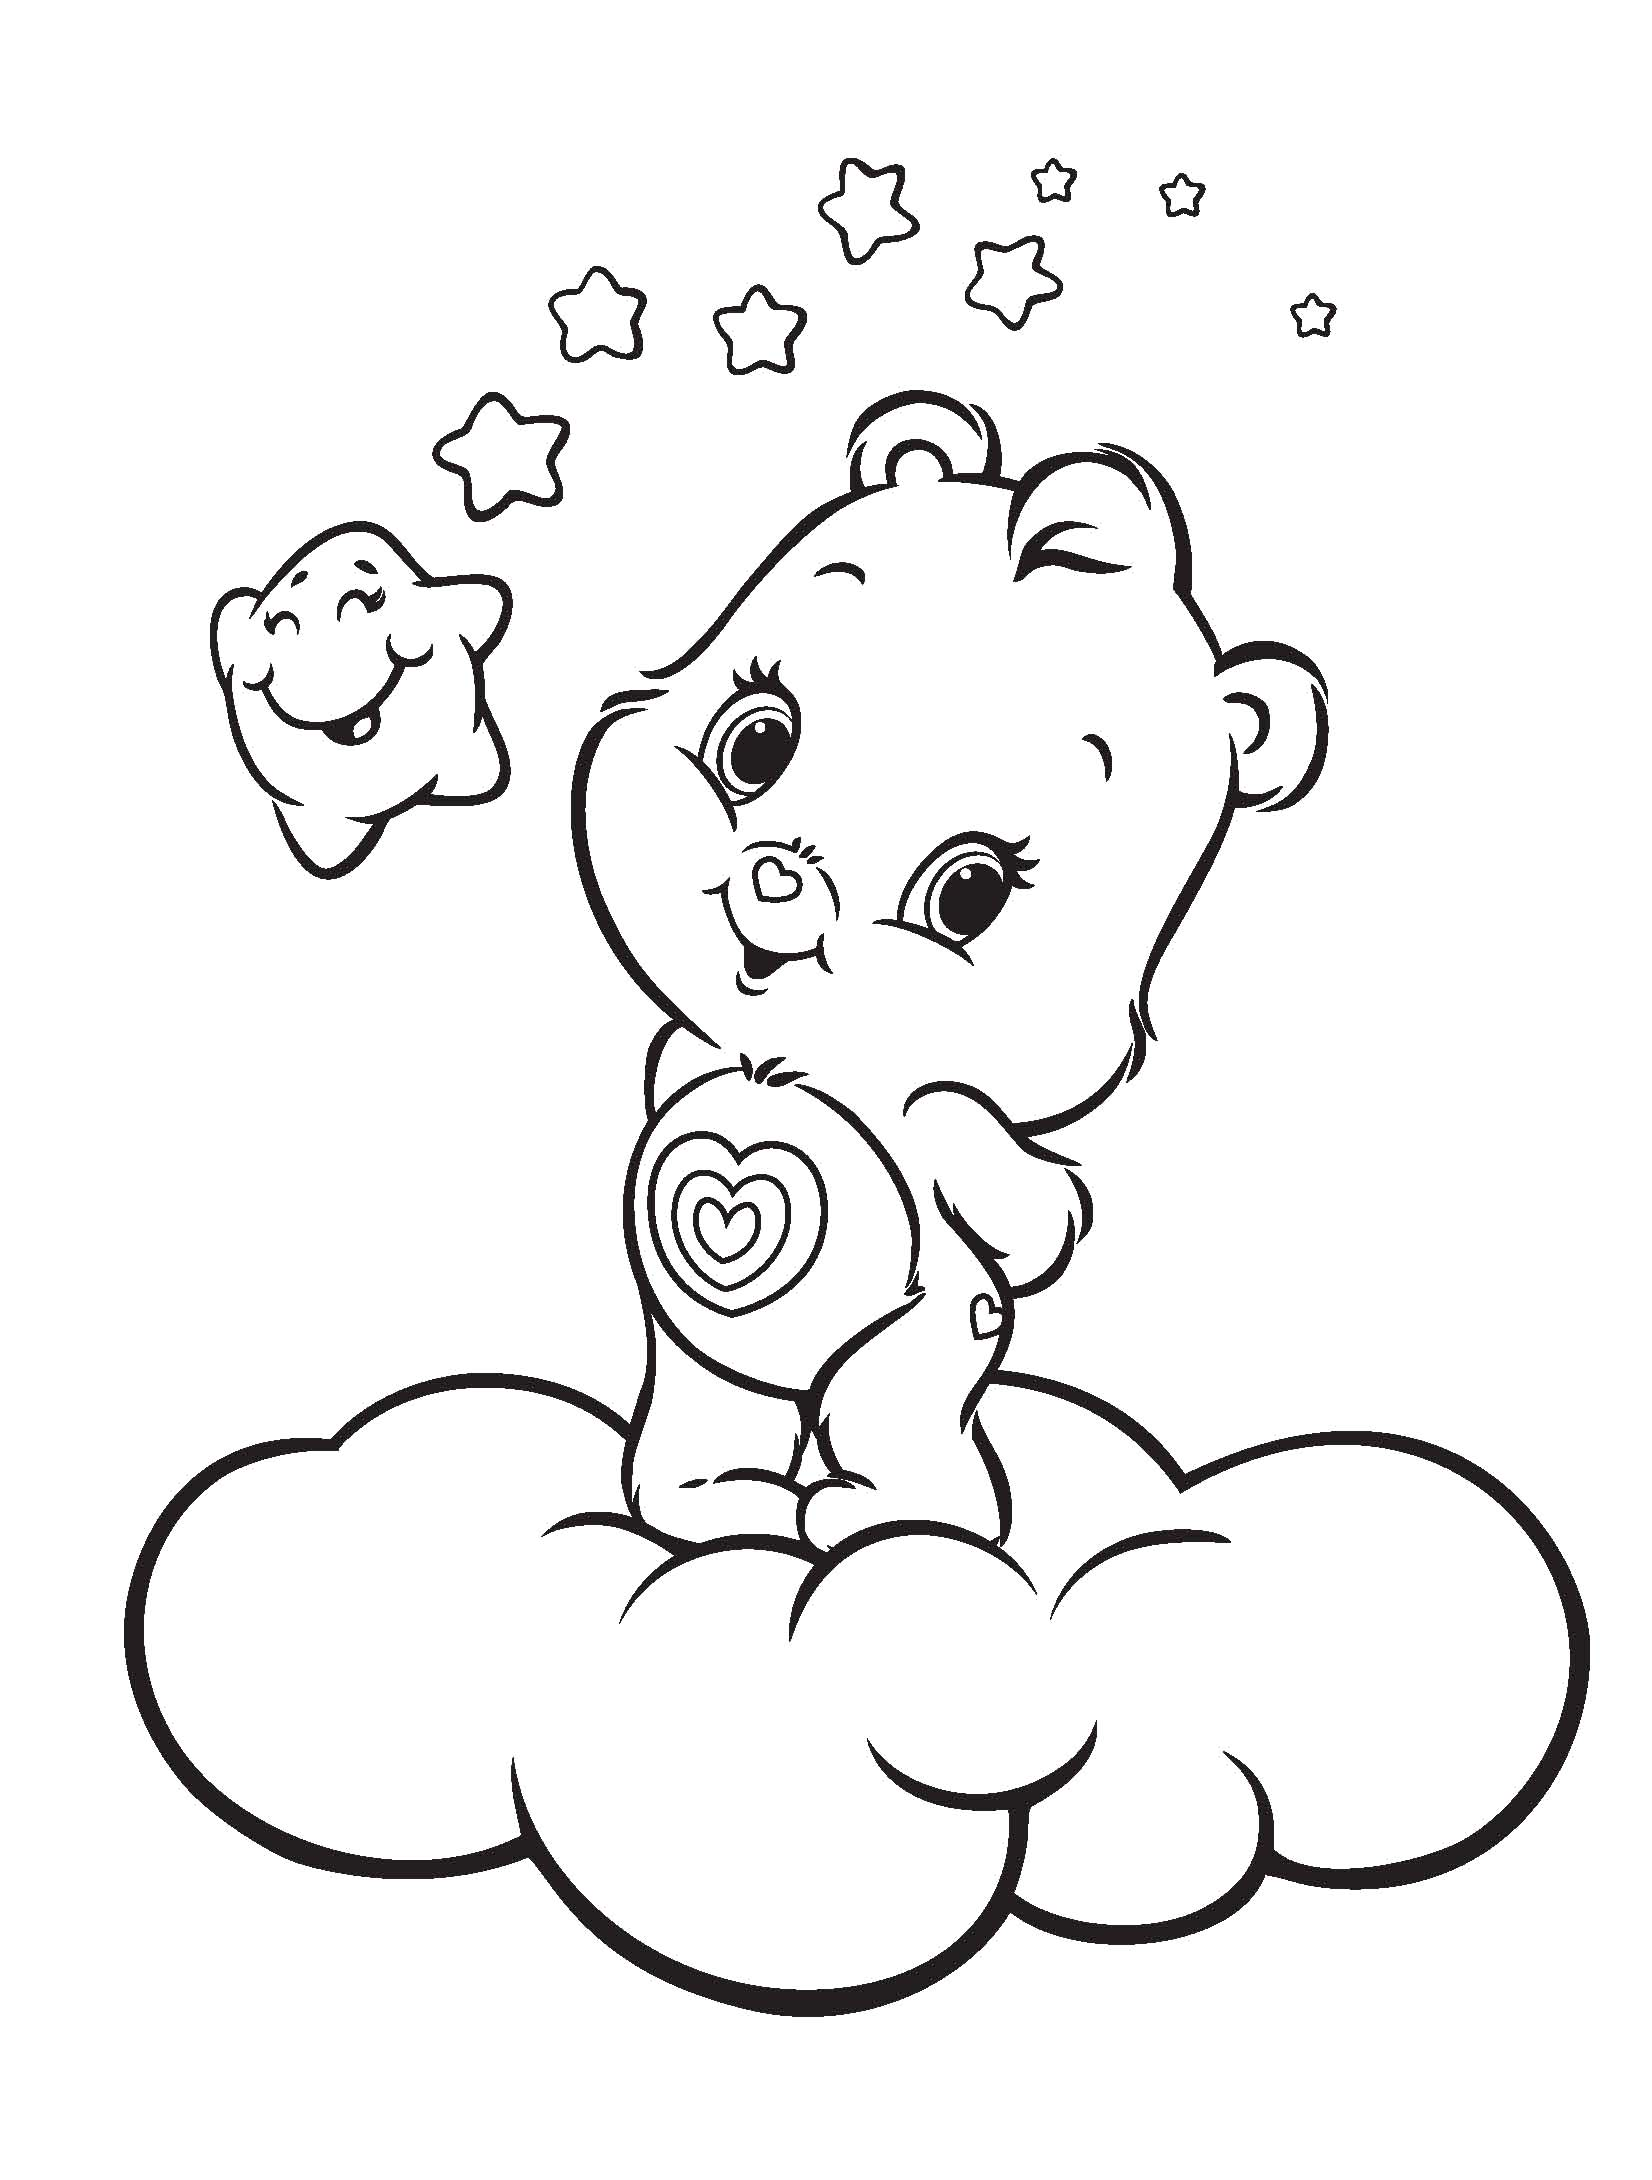 - Free Printable Care Bear Coloring Pages For Kids